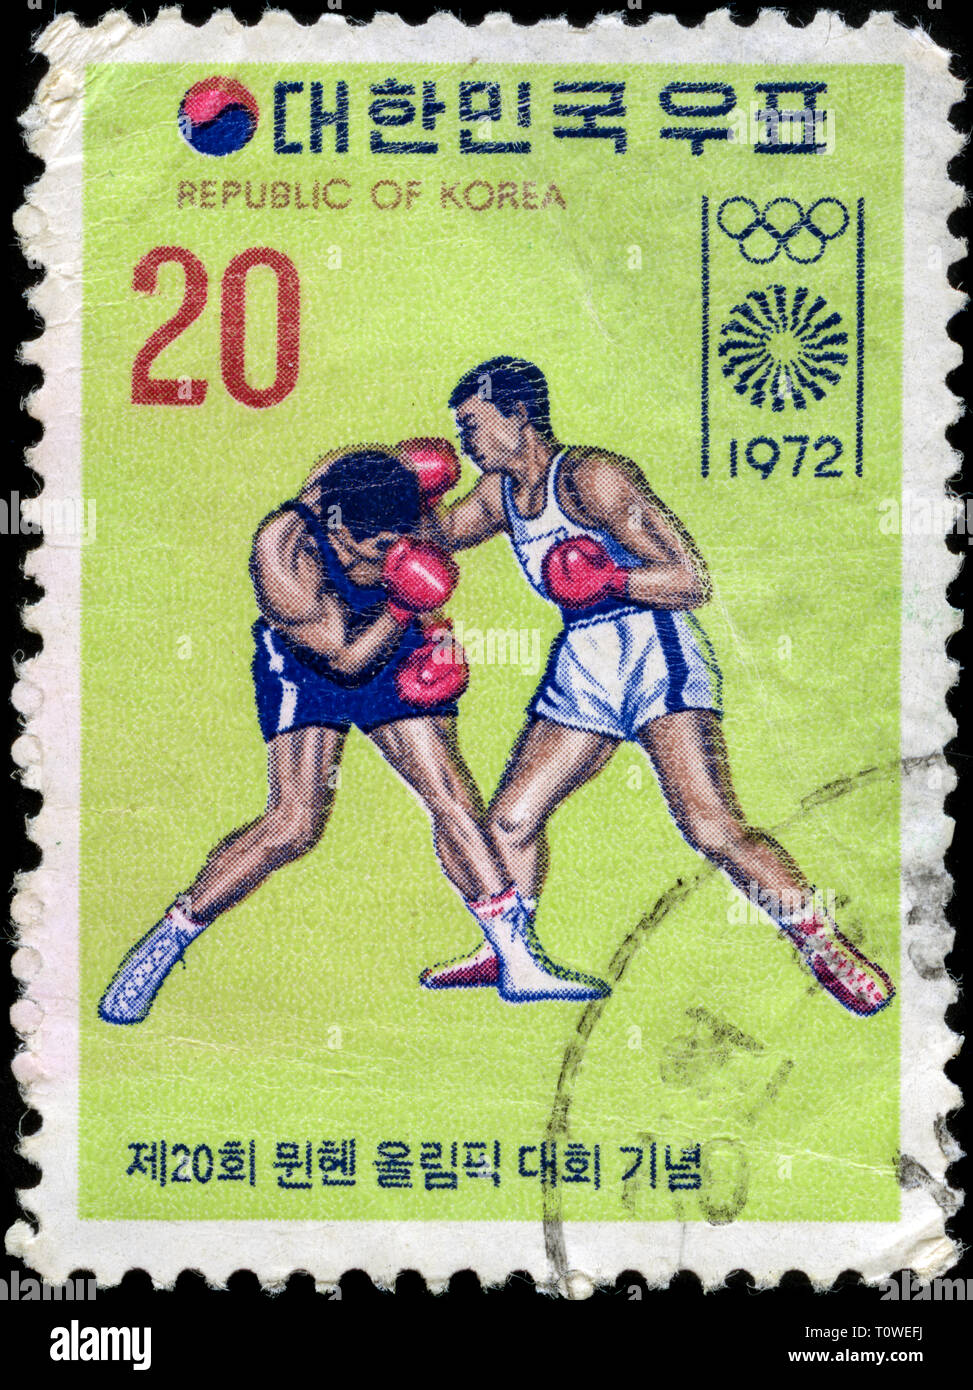 Postage stamp from South Korea in the Olympic Games series issued in 1972 - Stock Image